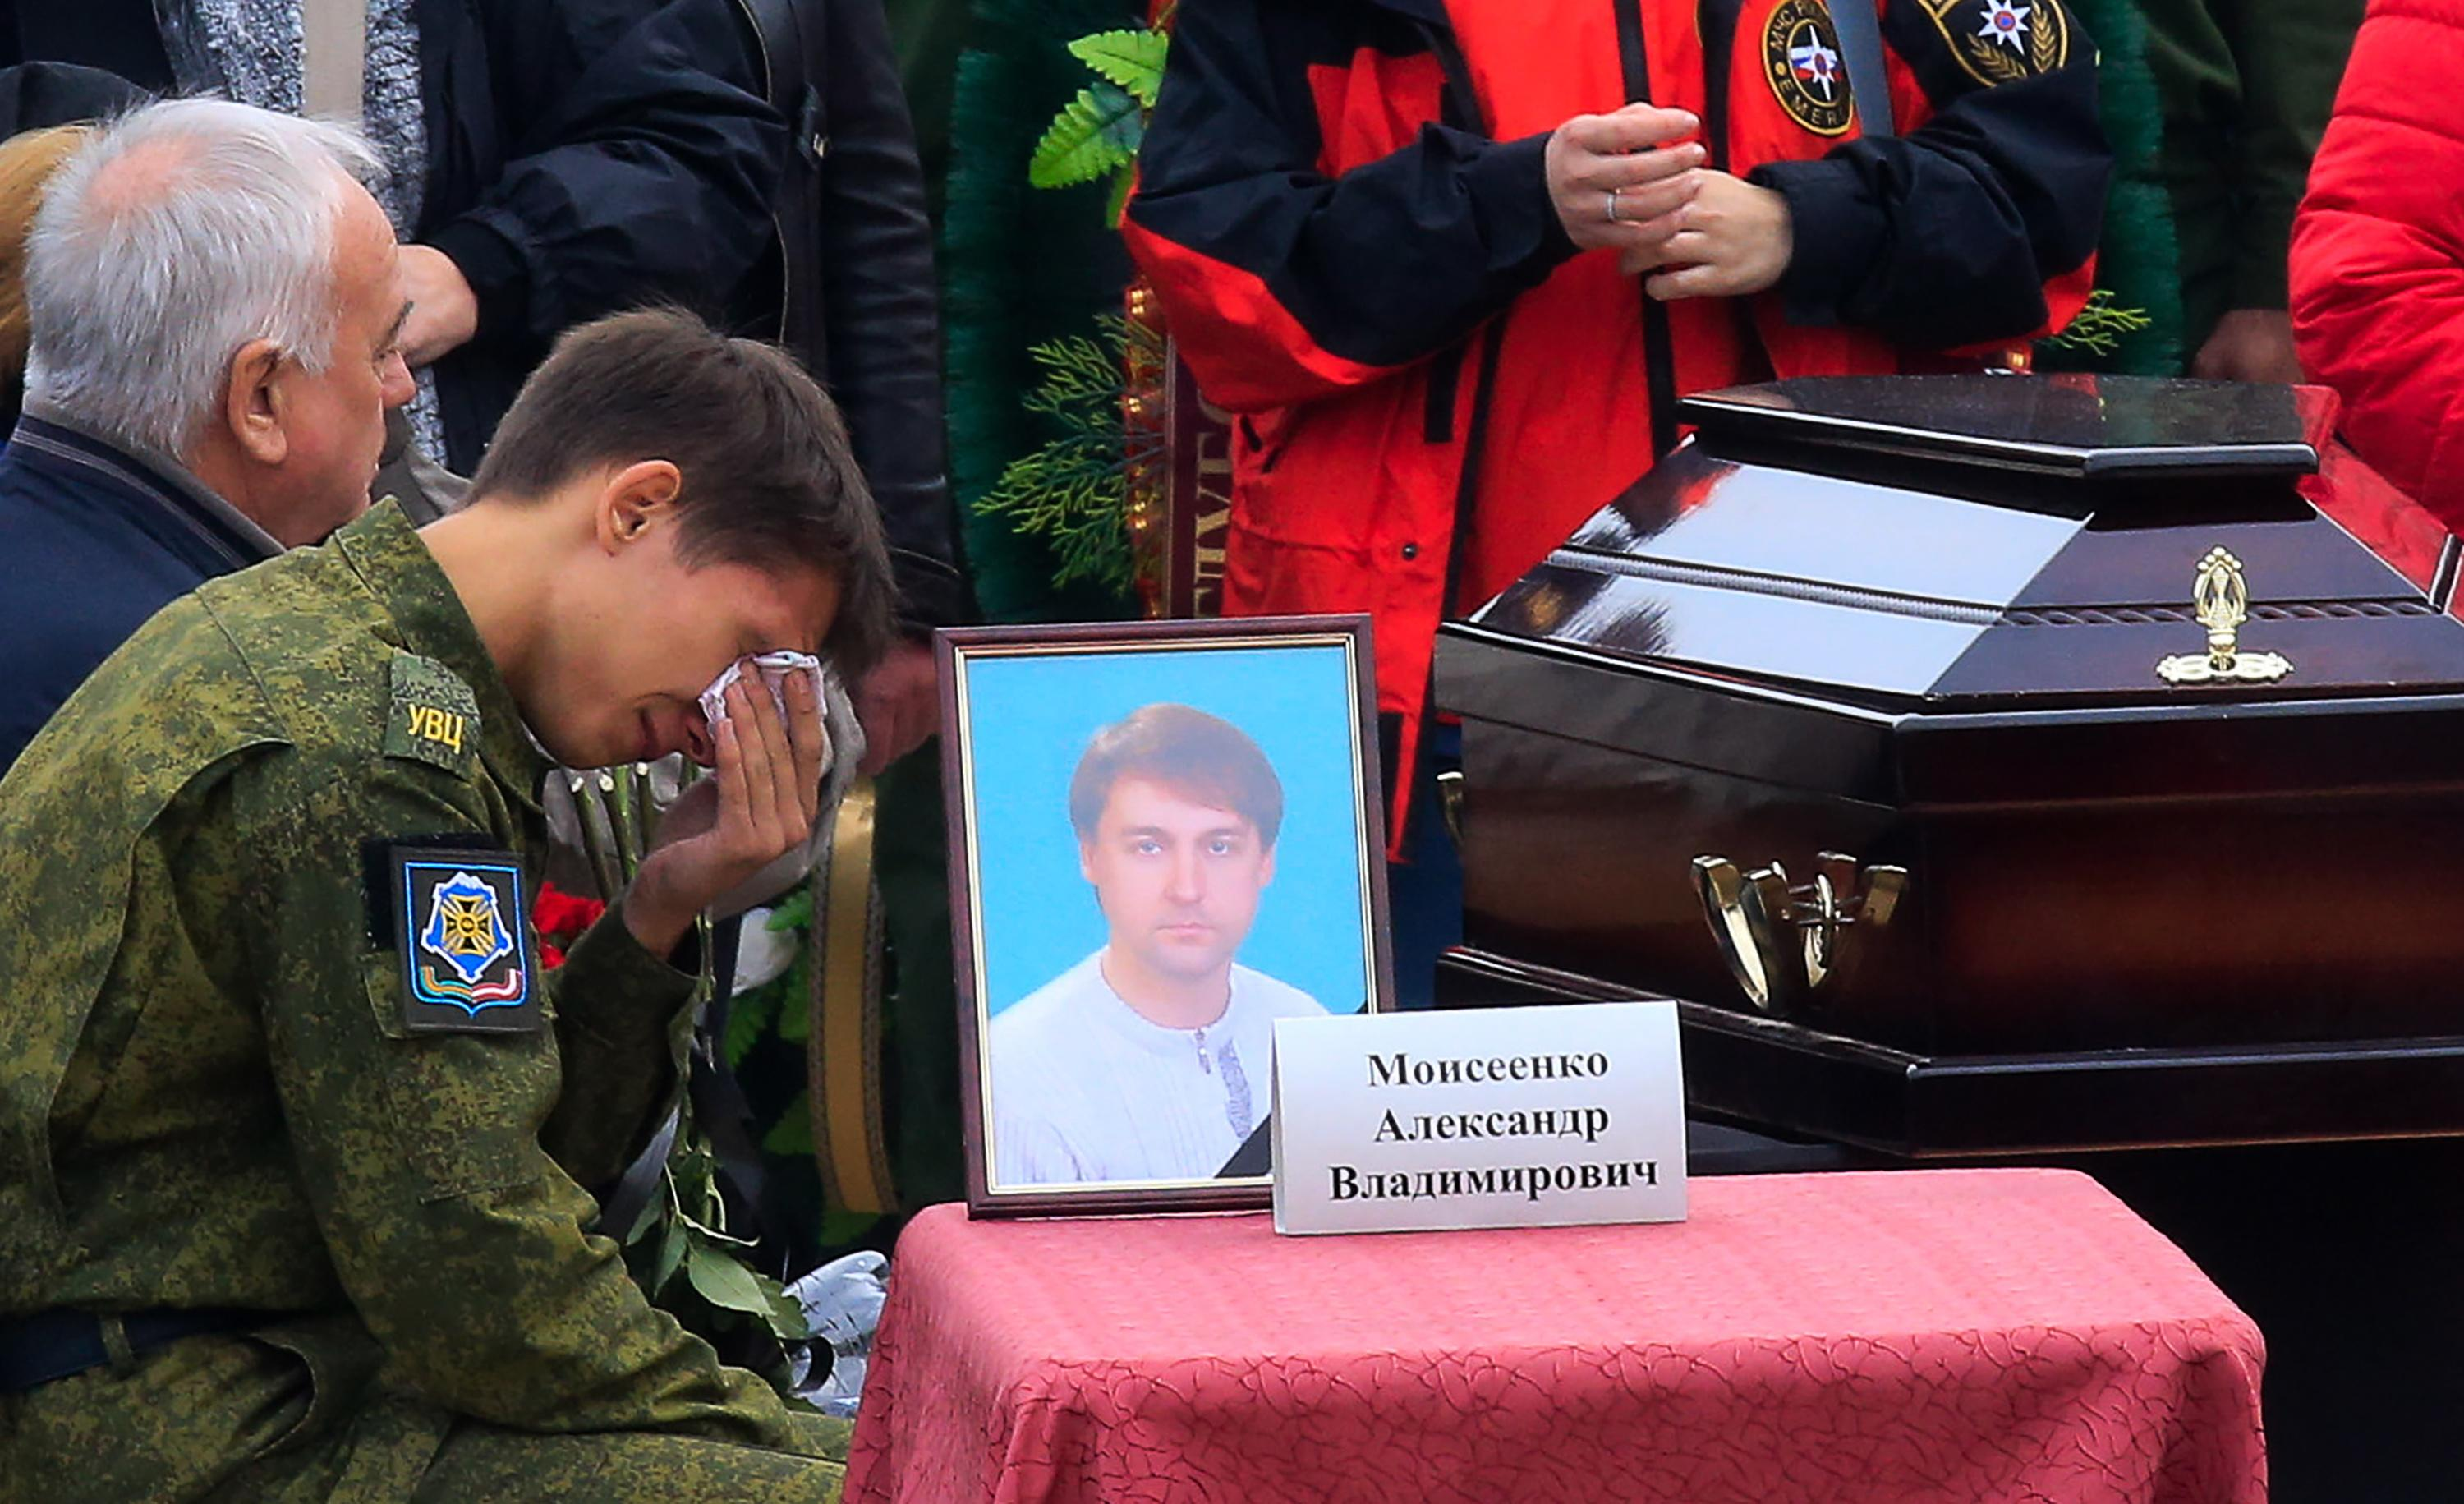 <p>Relatives of a Kerch school attack victim, teacher Alexander Moiseyenko, at a ceremony in Lenin Square on Oct. 19, 2018, to pay last respects to victims of the October 2018 explosion and shooting incident at the Kerch Polytechnic Vocational School in Kerch, Crimea. (Photo: Valery Matytsin/TASS via Getty Images) </p>